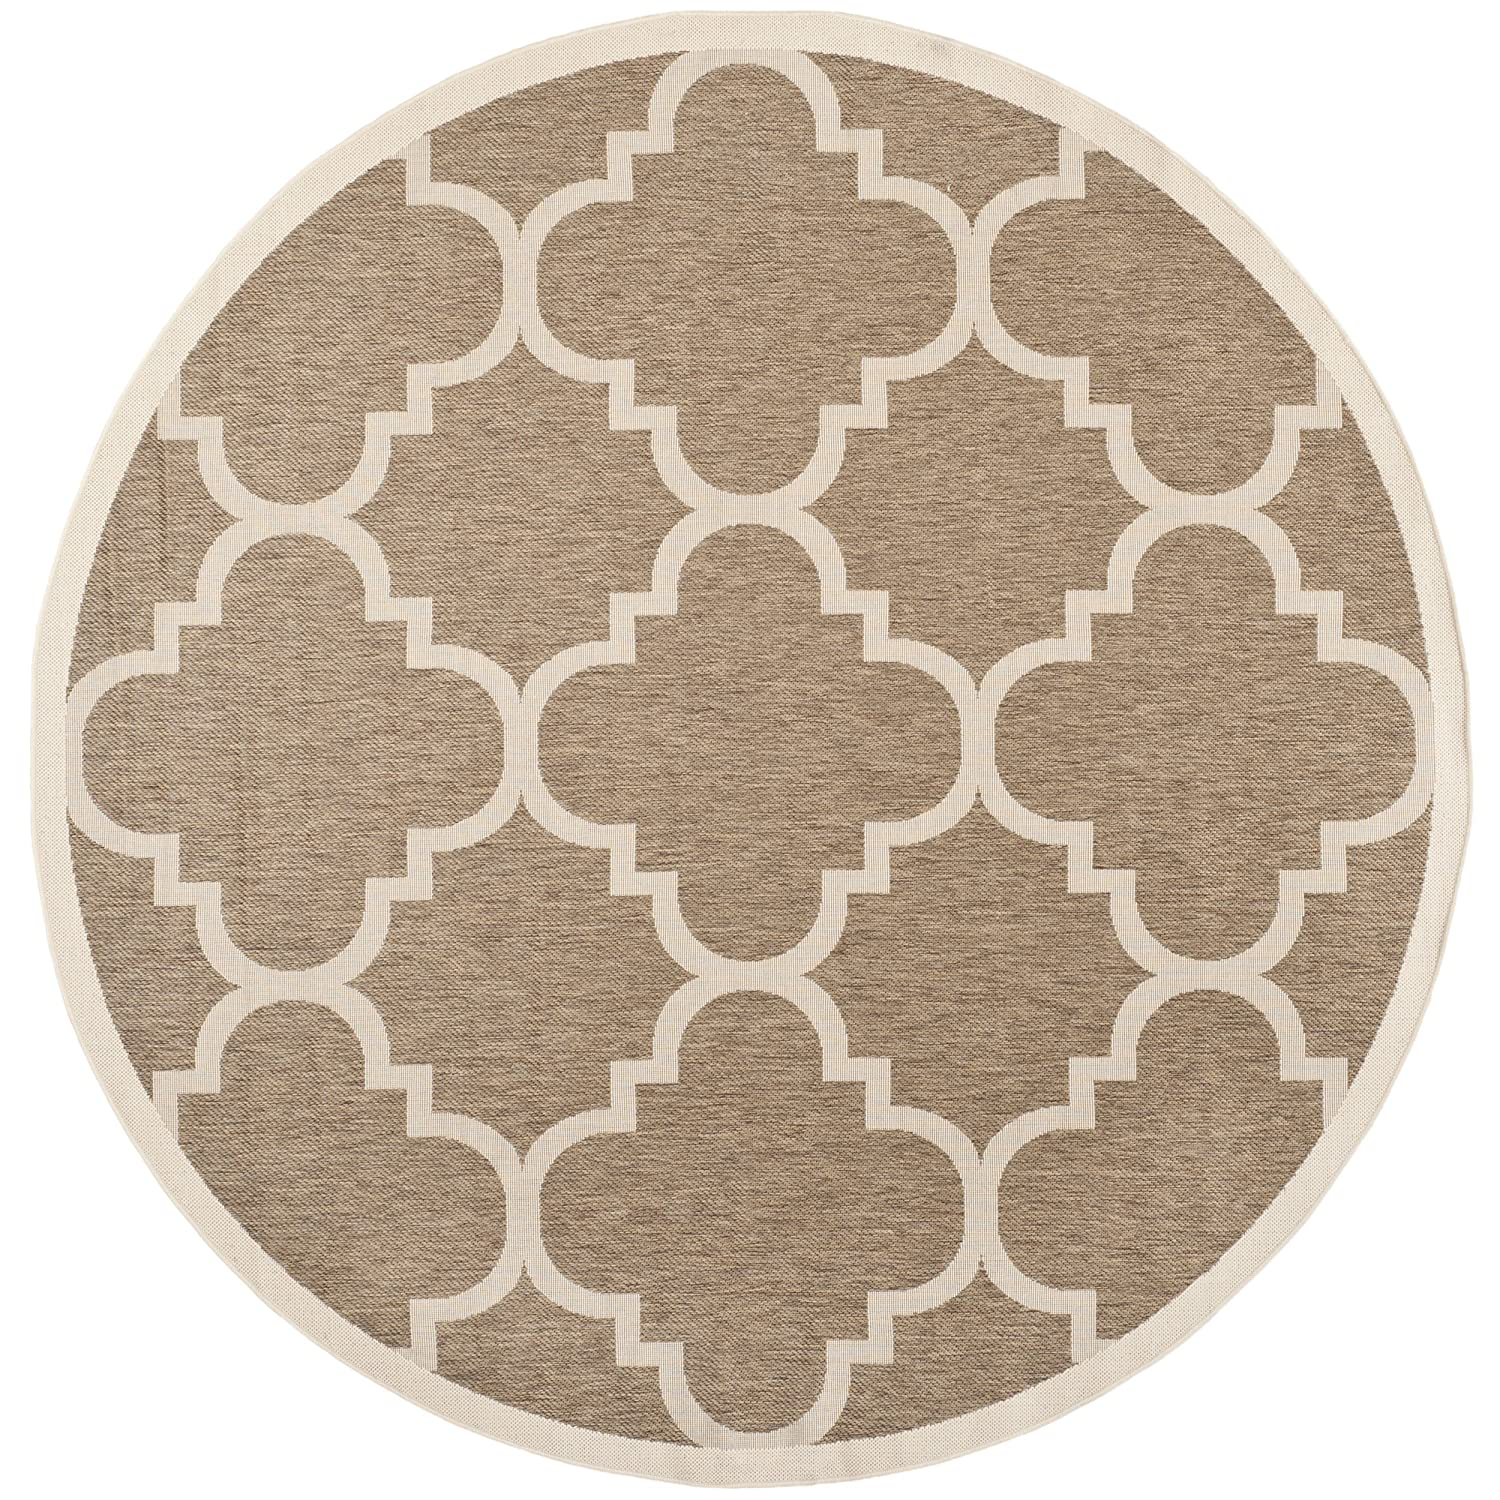 Modern Round Rug Brown Tan Indoor Outdoor Area Accent 5